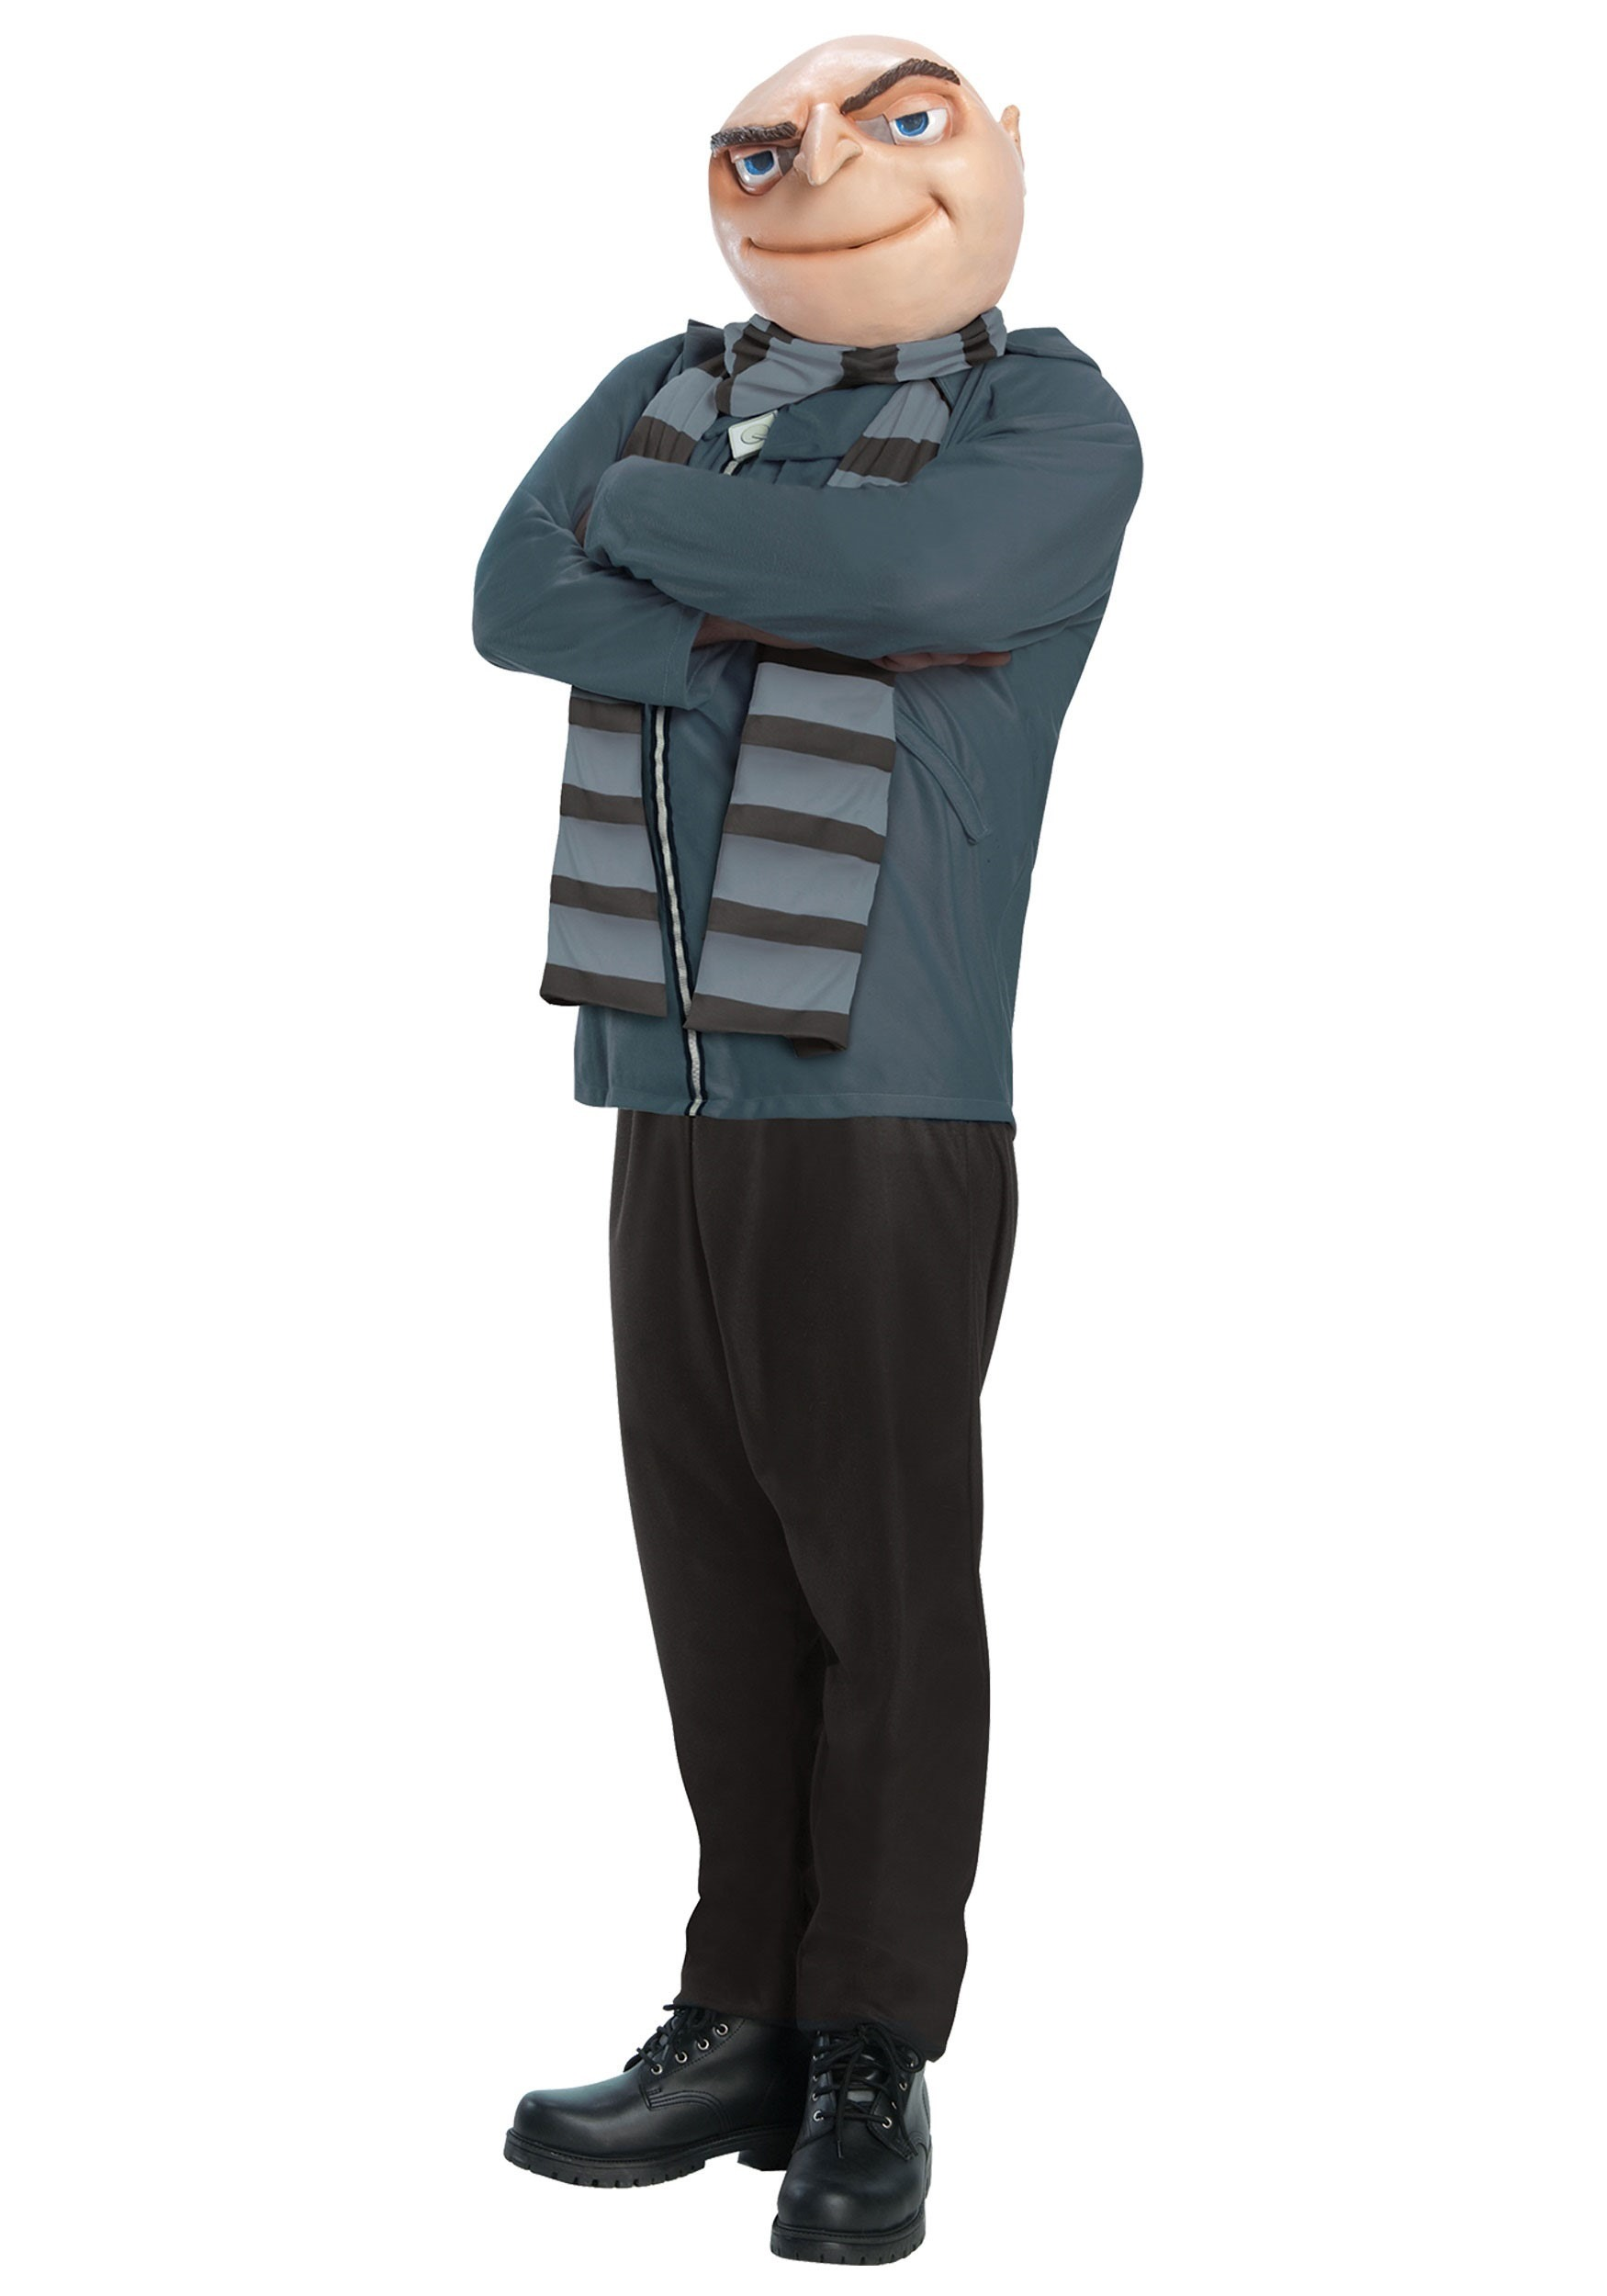 Halloween Costumes For Adults: Adult Gru Costume